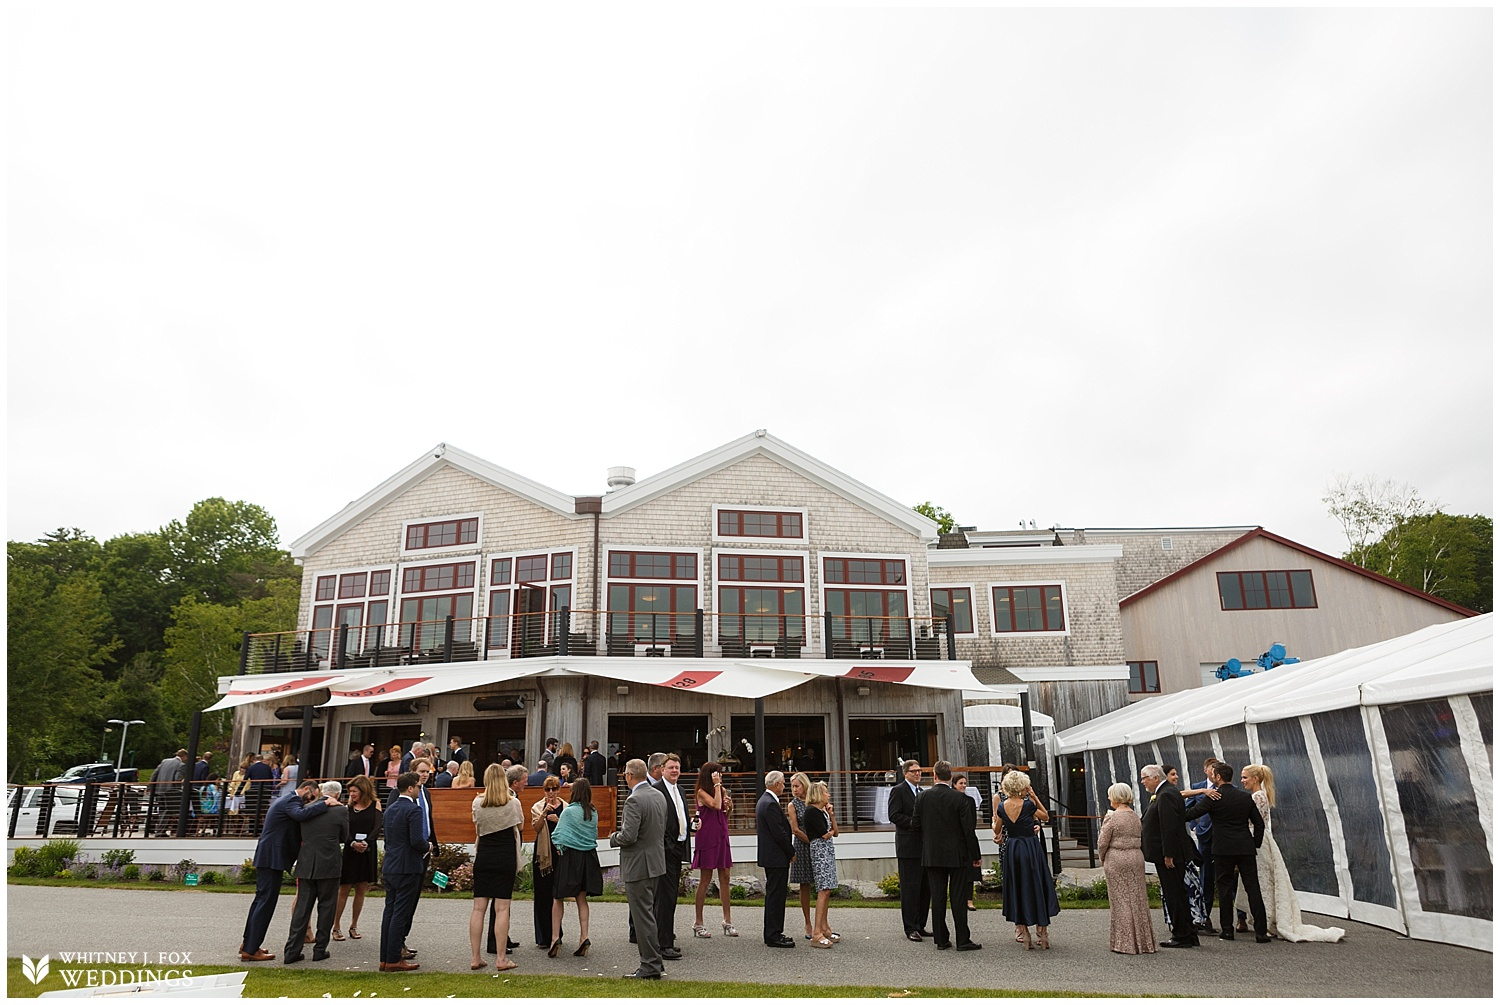 formal_seaside_summer_wedding_dockside_grill_falmouth_maine_photographer_whitney_j_fox_weddings_59.JPG